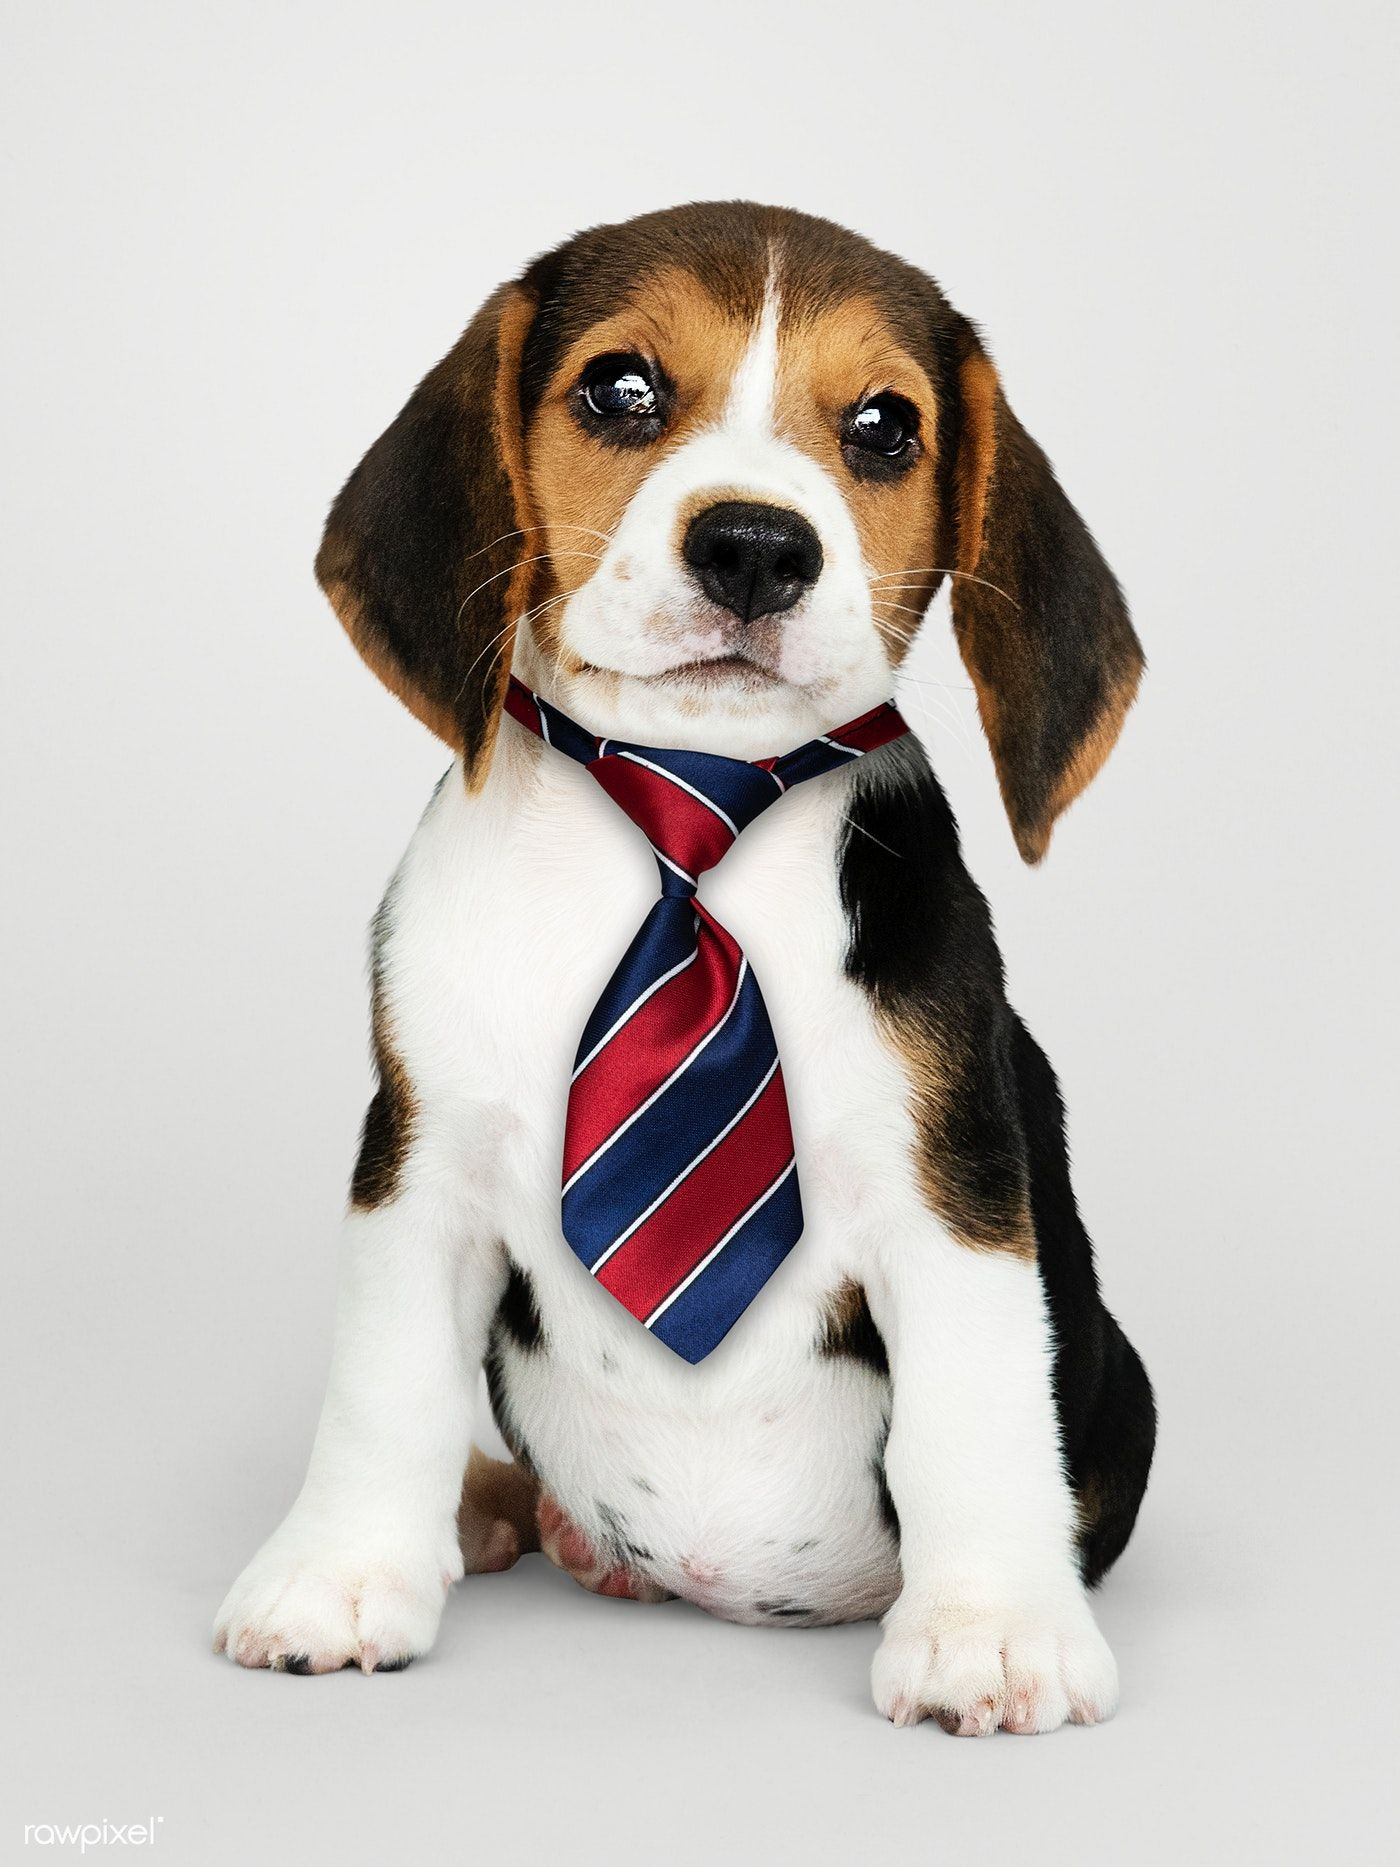 Download Premium Psd Of Cute Beagle Puppy In A Red Blue And White Striped Cute Beagles Beagle Puppy Cute Baby Animals